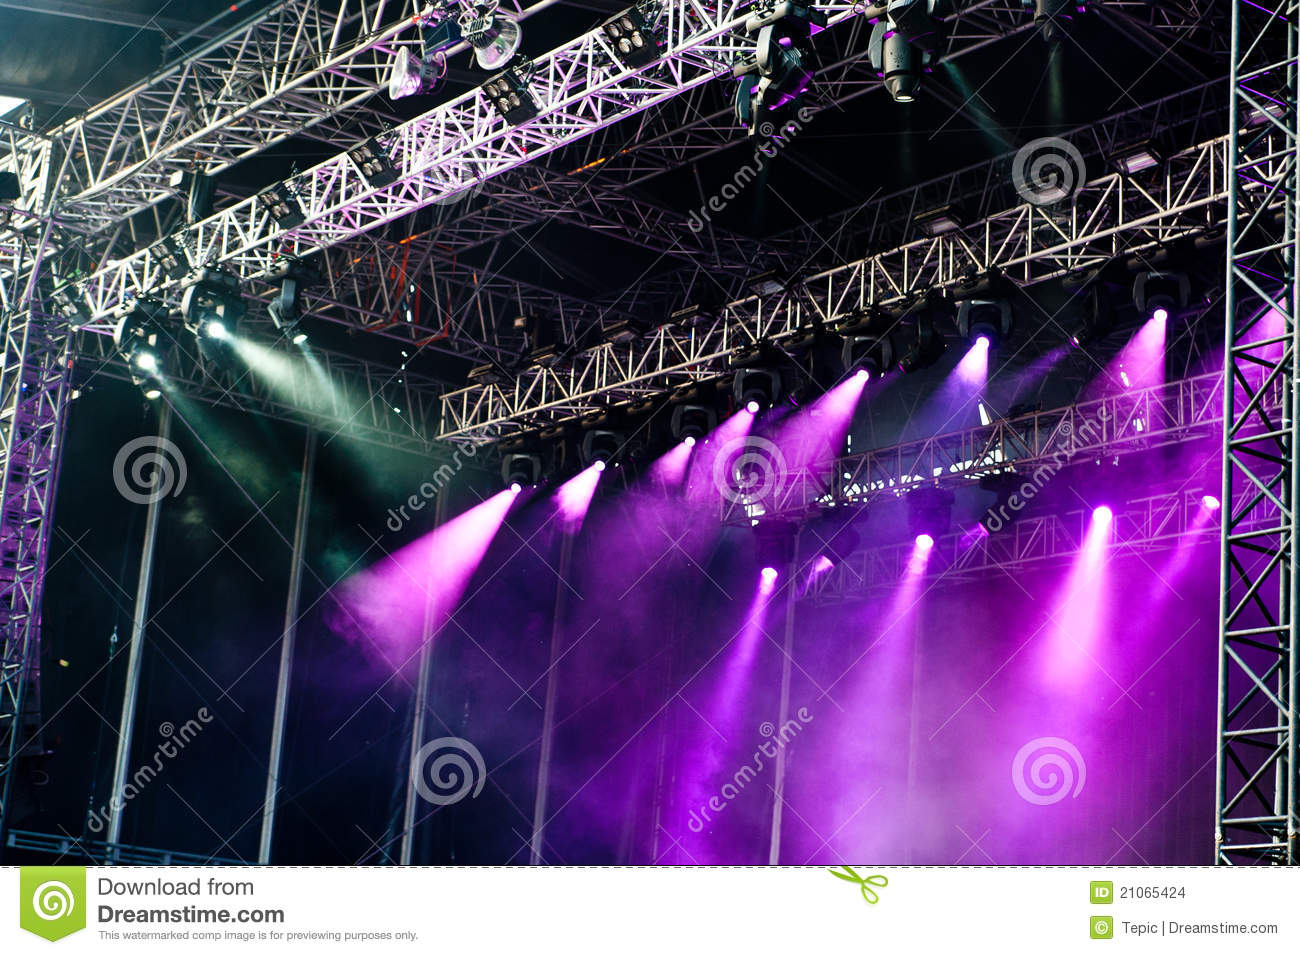 Big concert stage stock photo. Image of bulb, electric ...